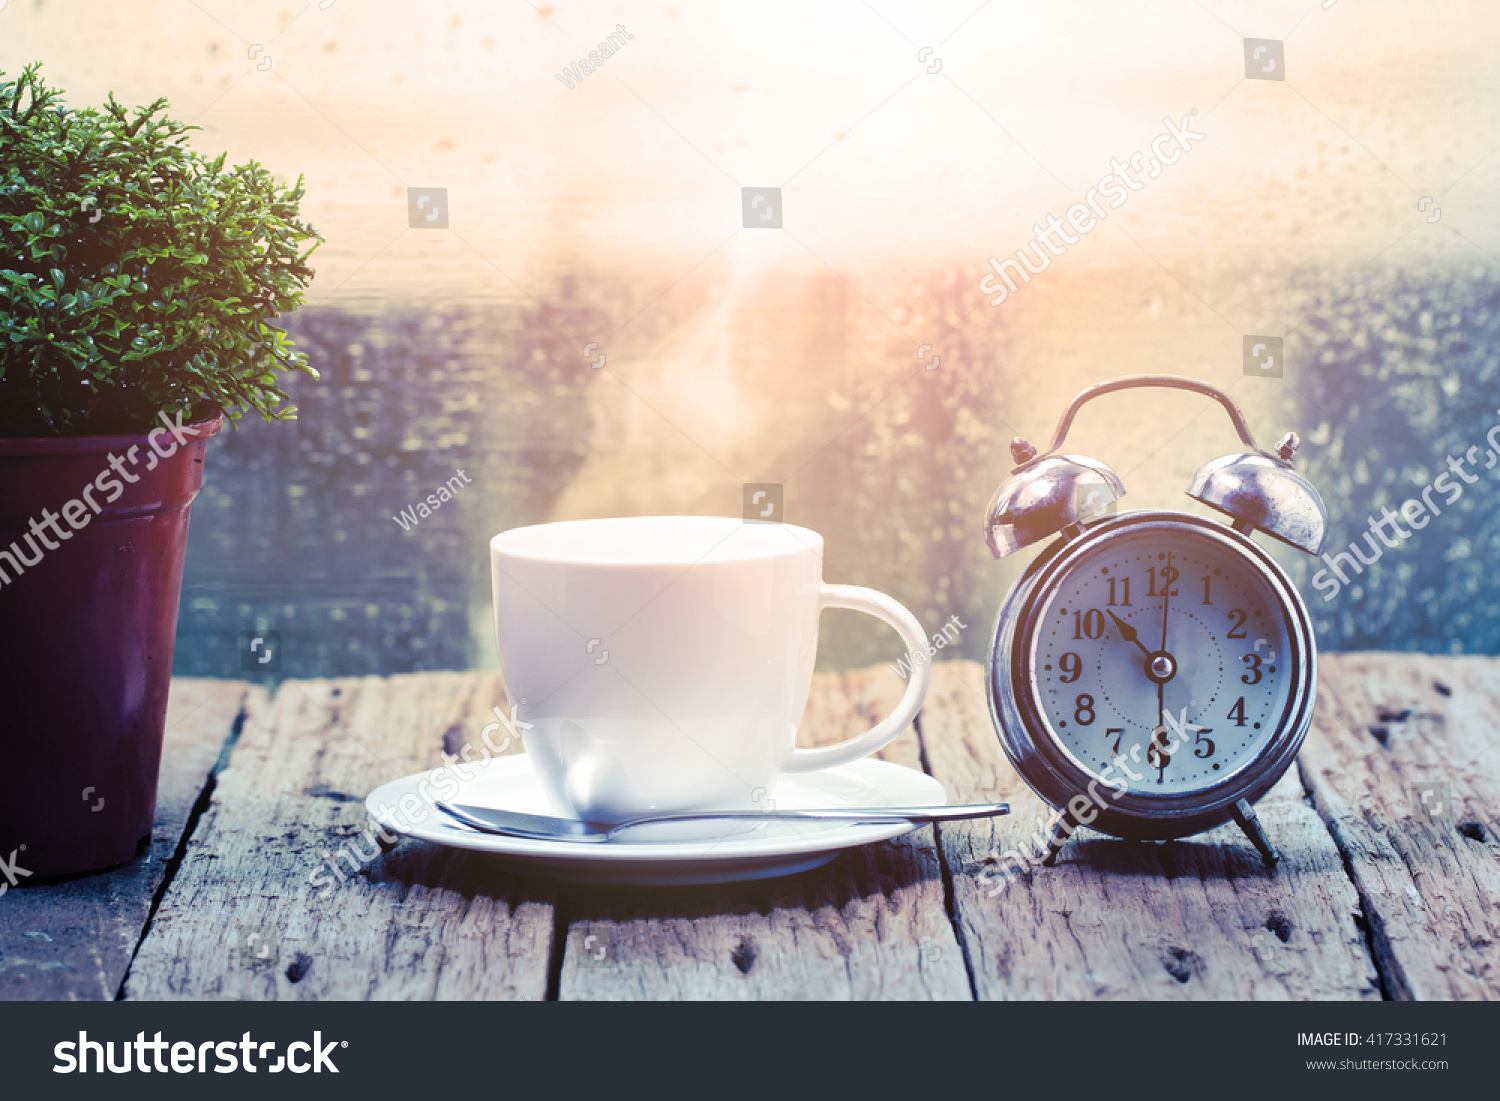 Steaming Coffee Cup On Rainy Day Stock Photo Edit Now 417331621